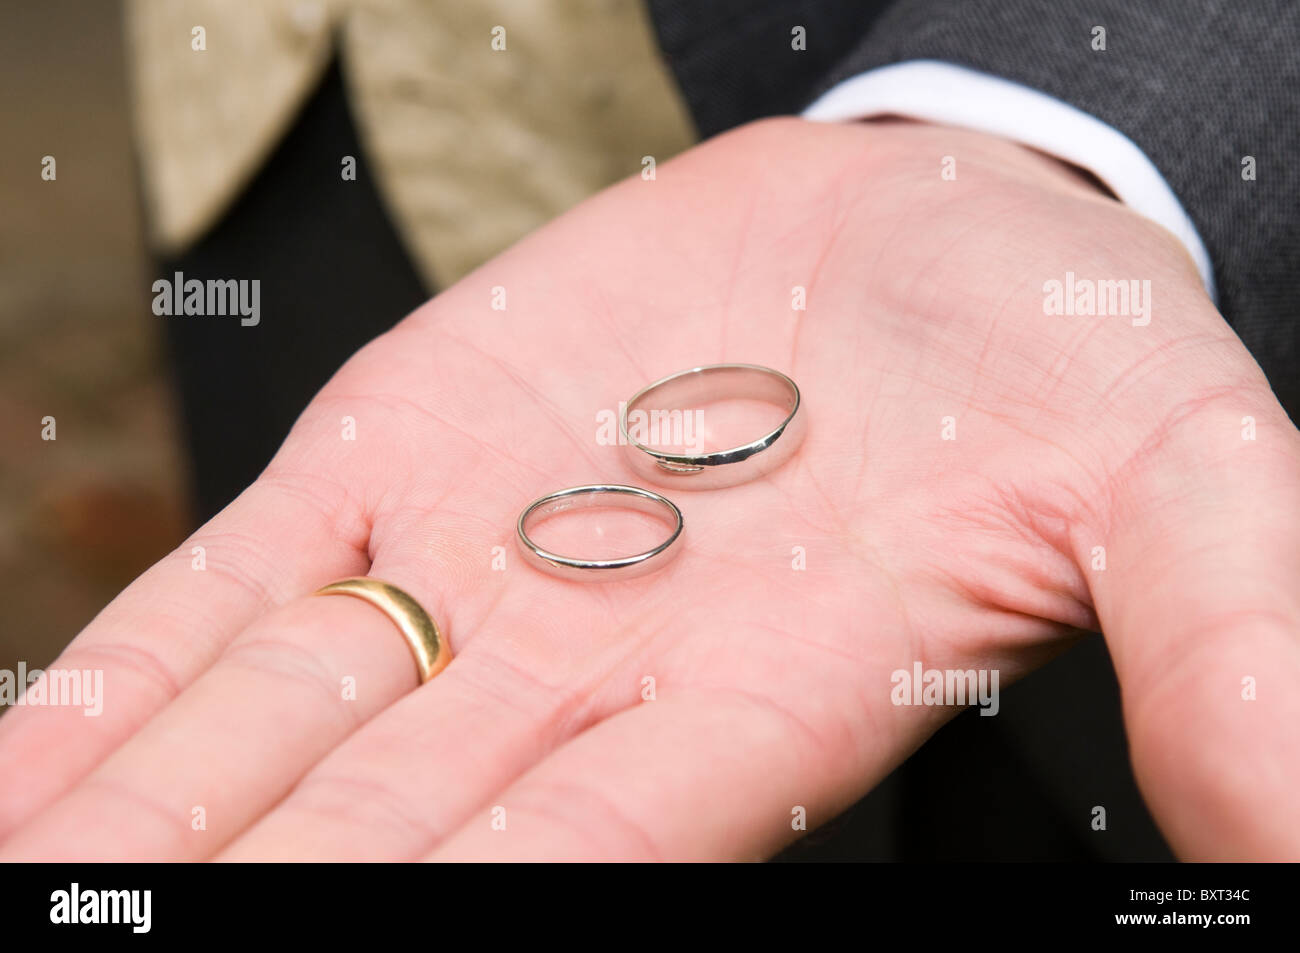 Mans Rings Stock Photos & Mans Rings Stock Images - Alamy